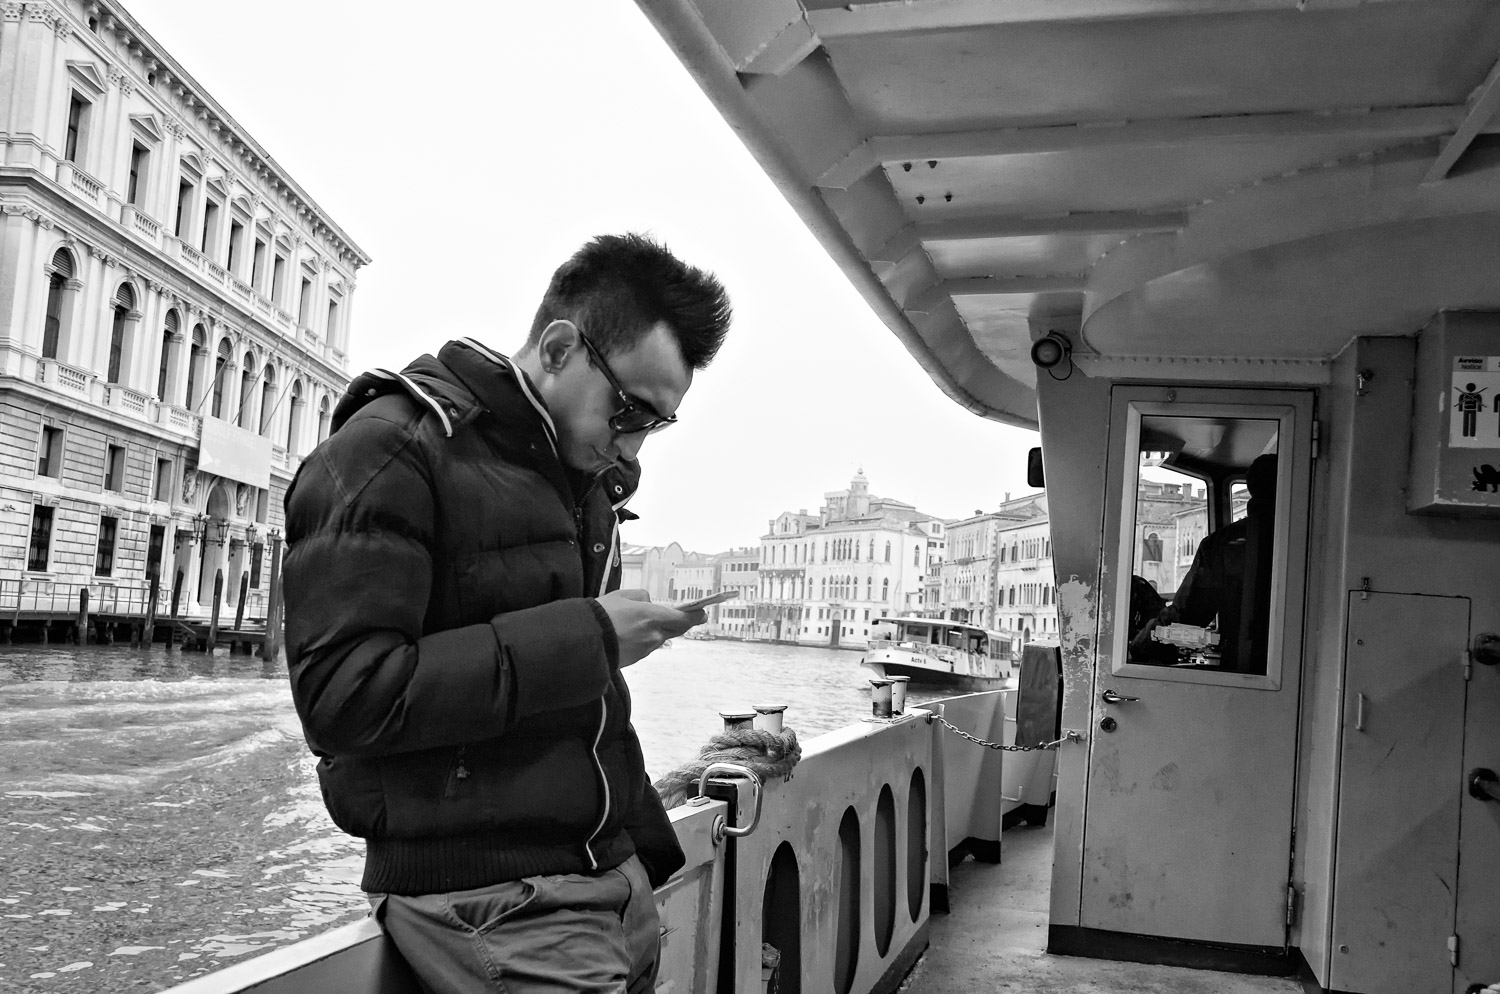 Man on Vaporetto with Phone